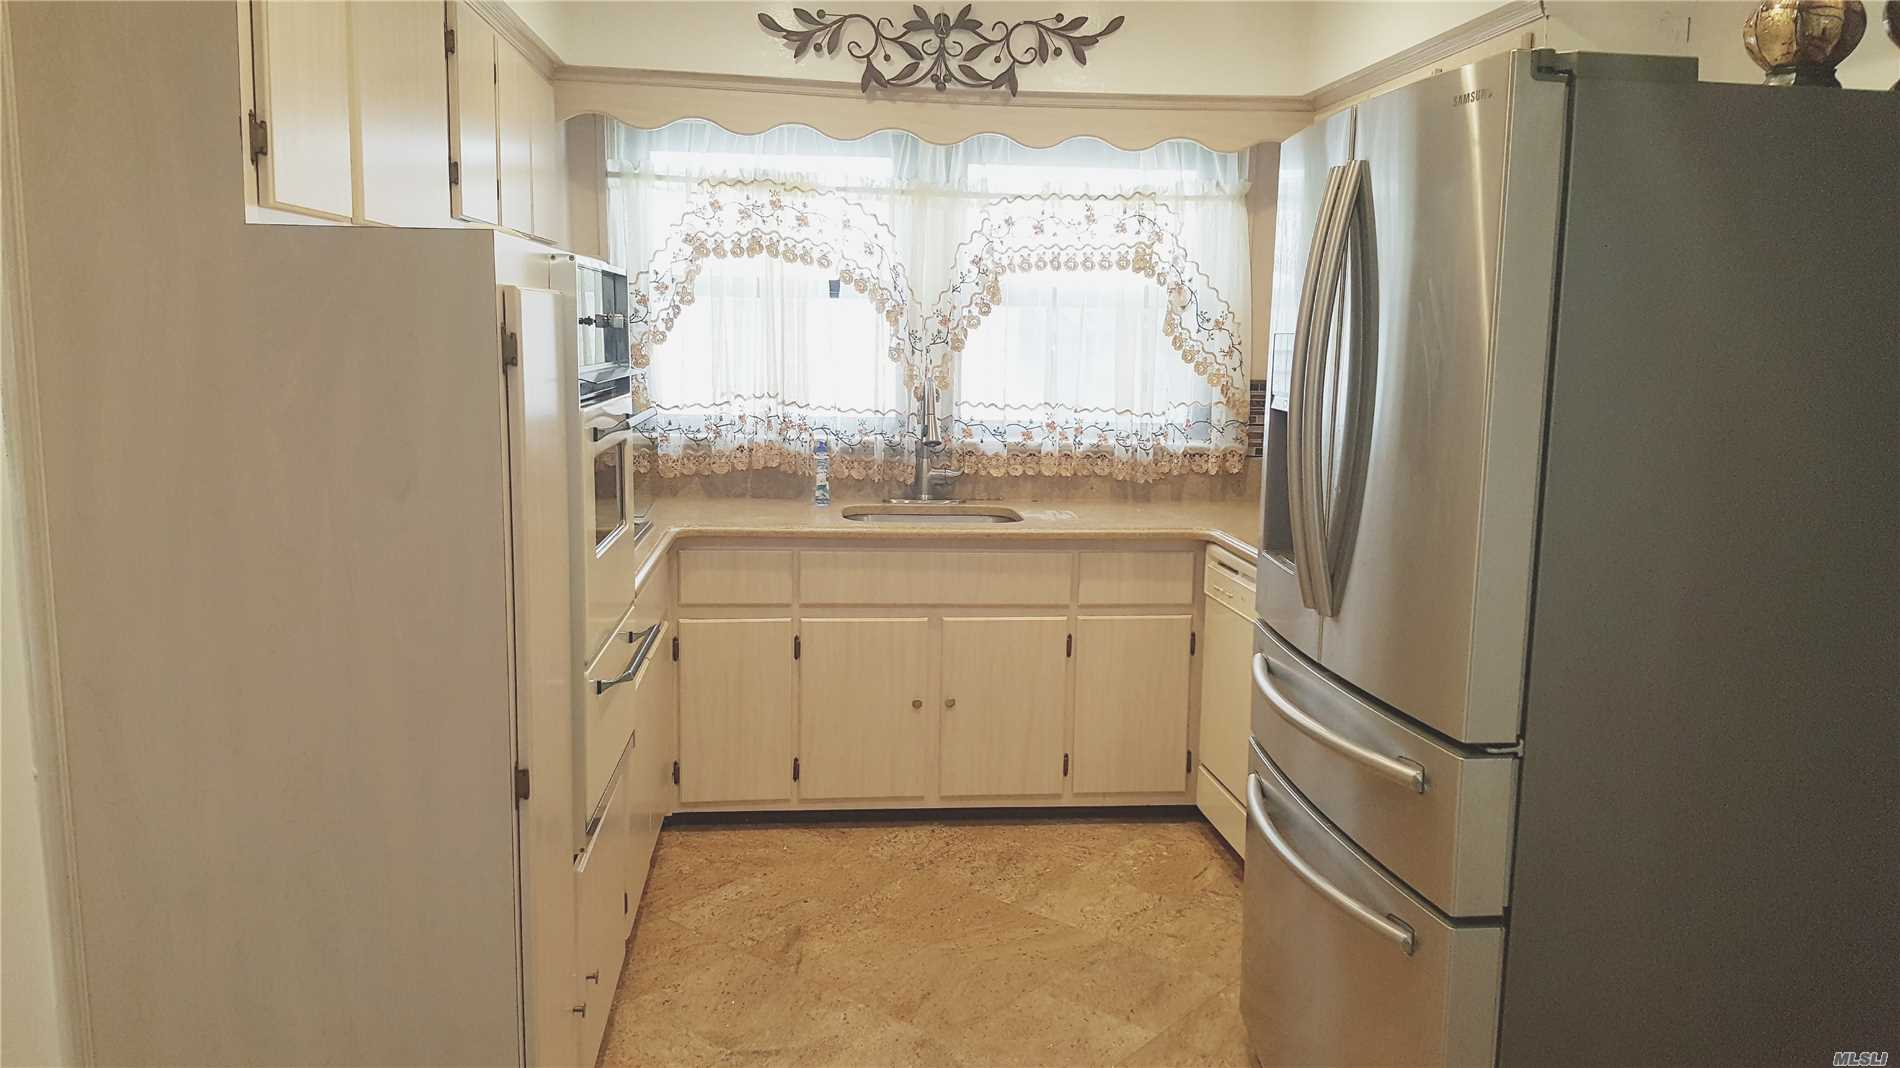 2 Family House. Apt On The First Fl. 1/2 Basement Laundry Room Included For Additional Rent. Newly Renovated Bath With Jacuzzi Tub. Brand New Samsung Refrigerator. Wood Floors.